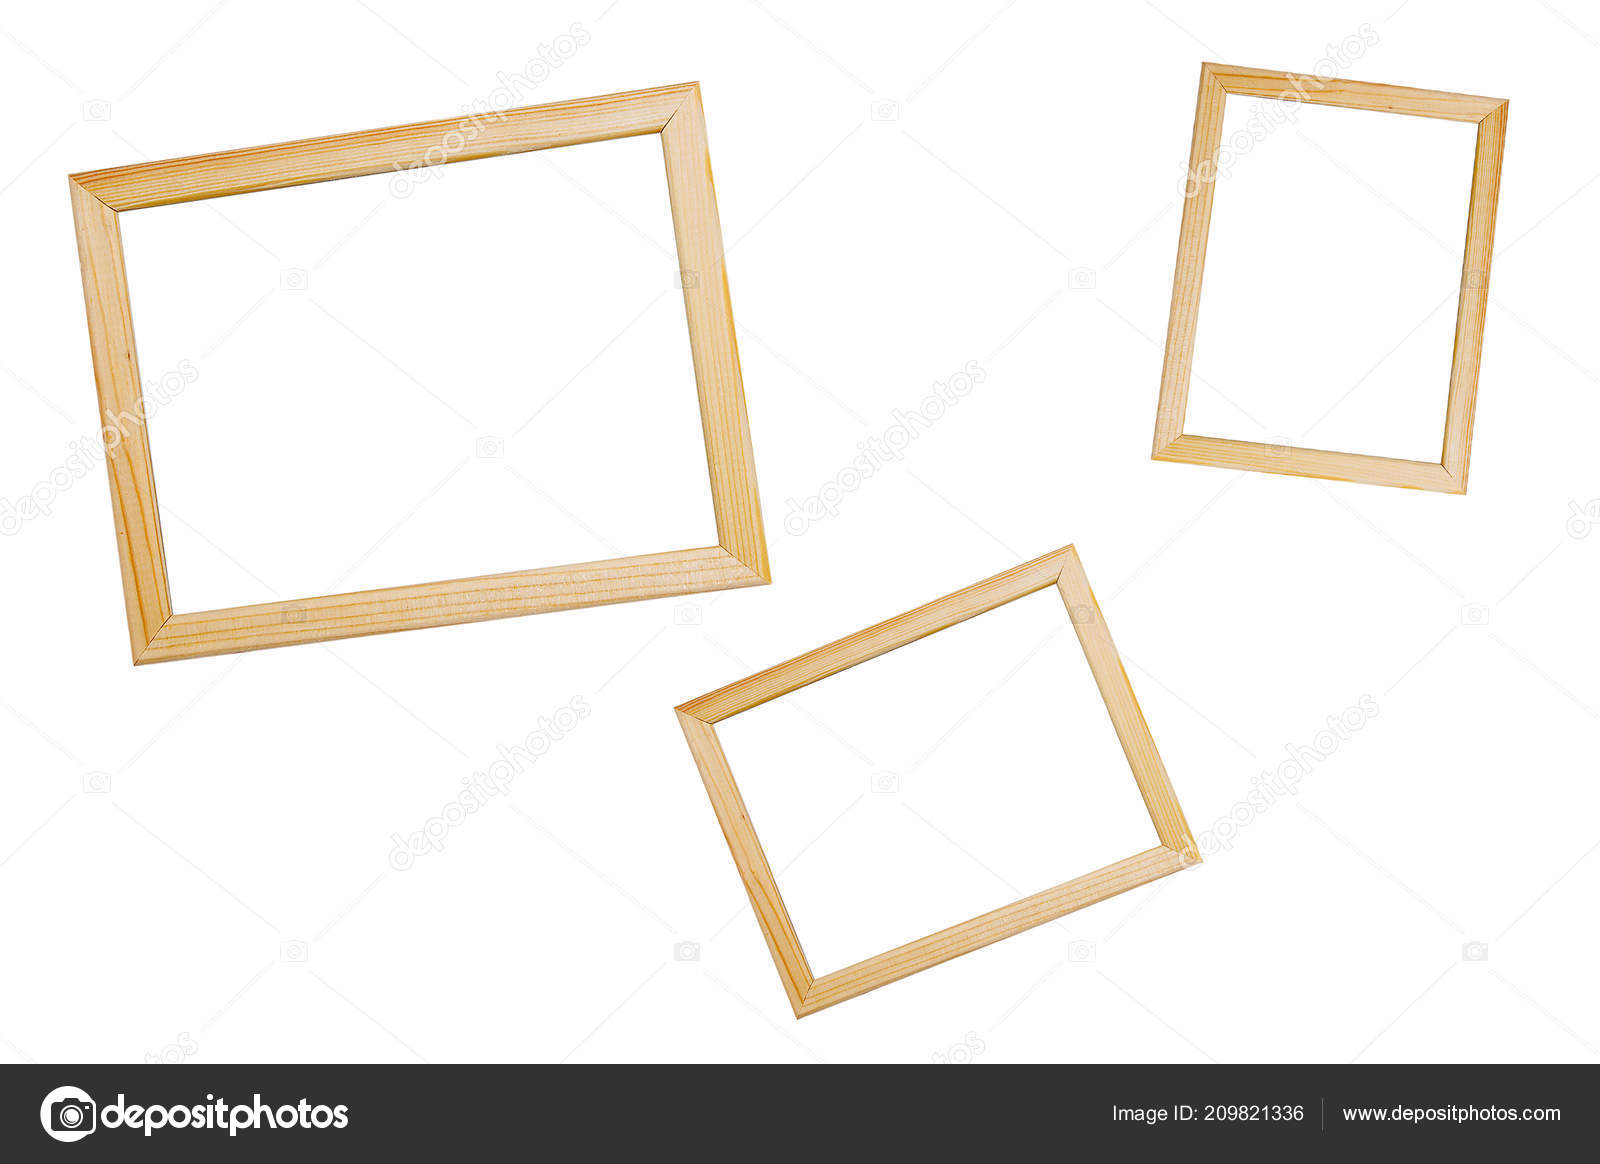 Wooden Frames Different Sizes Photos White Isolate — Stock Photo ...